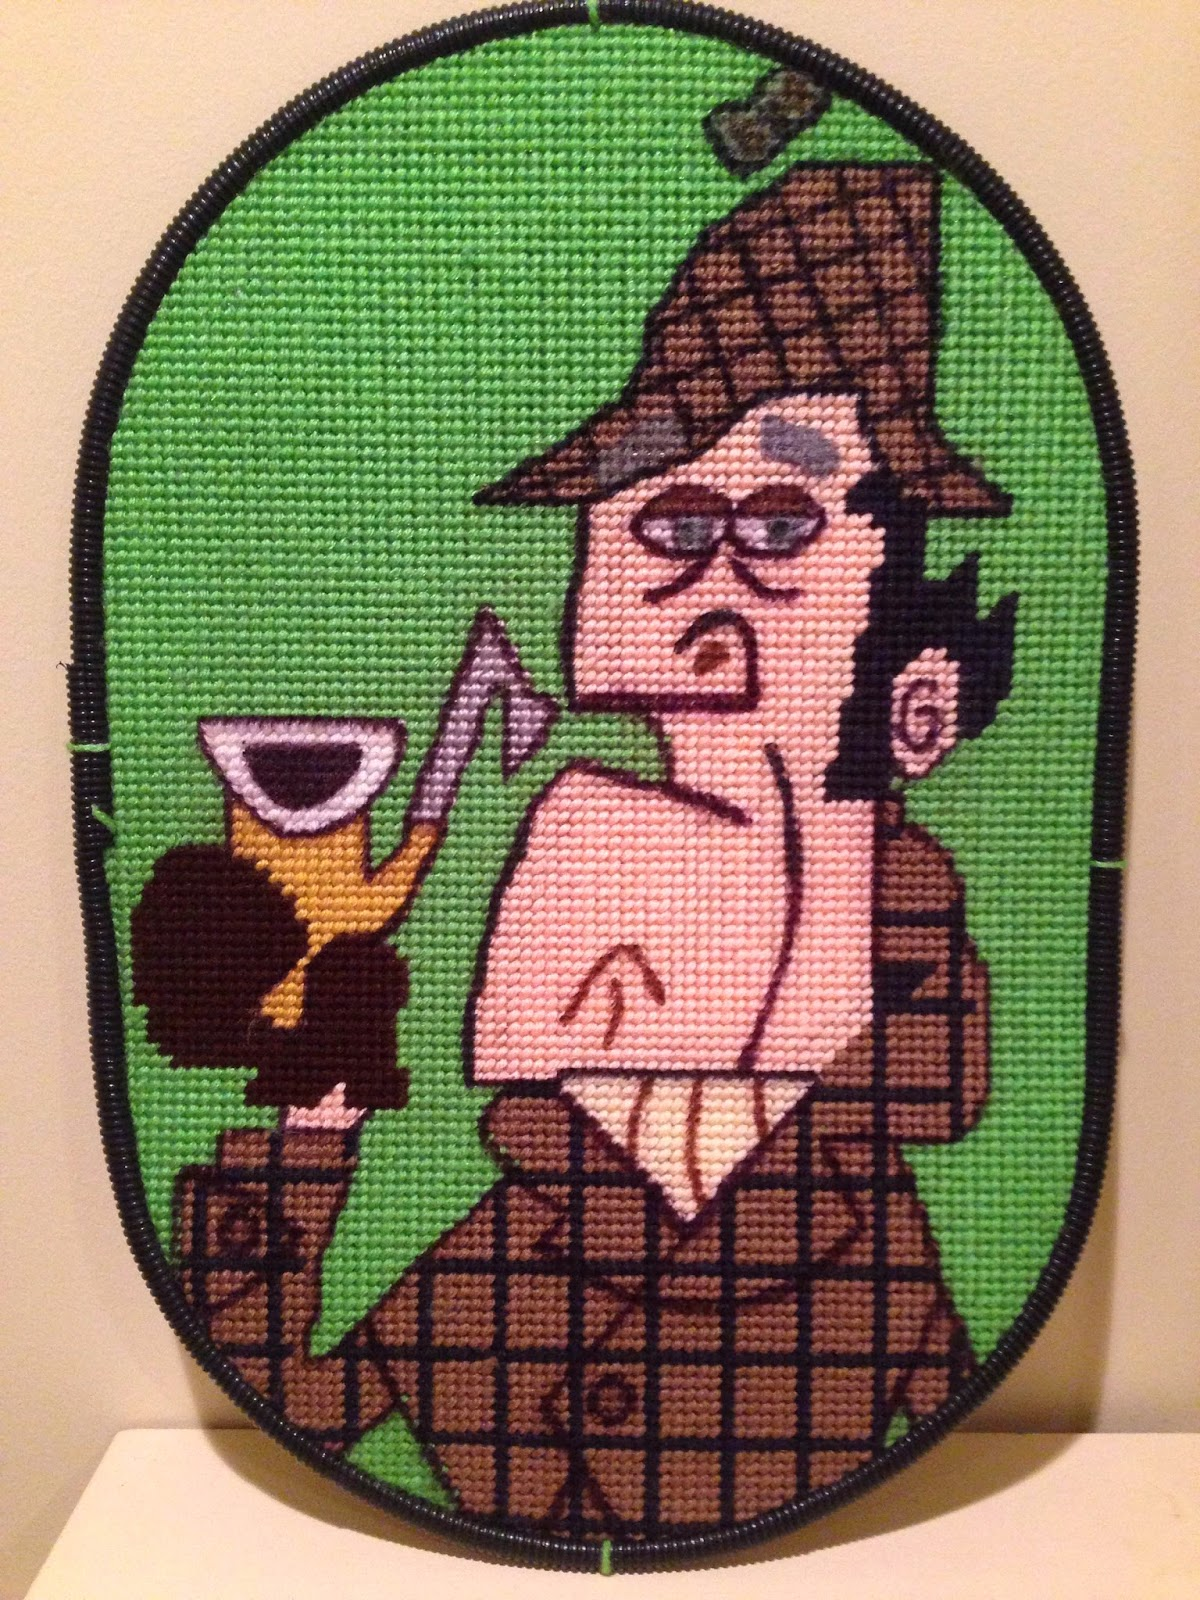 The I Hear of Sherlock Everywhere Sherlock Holmes logo as interpreted in needlepoint.